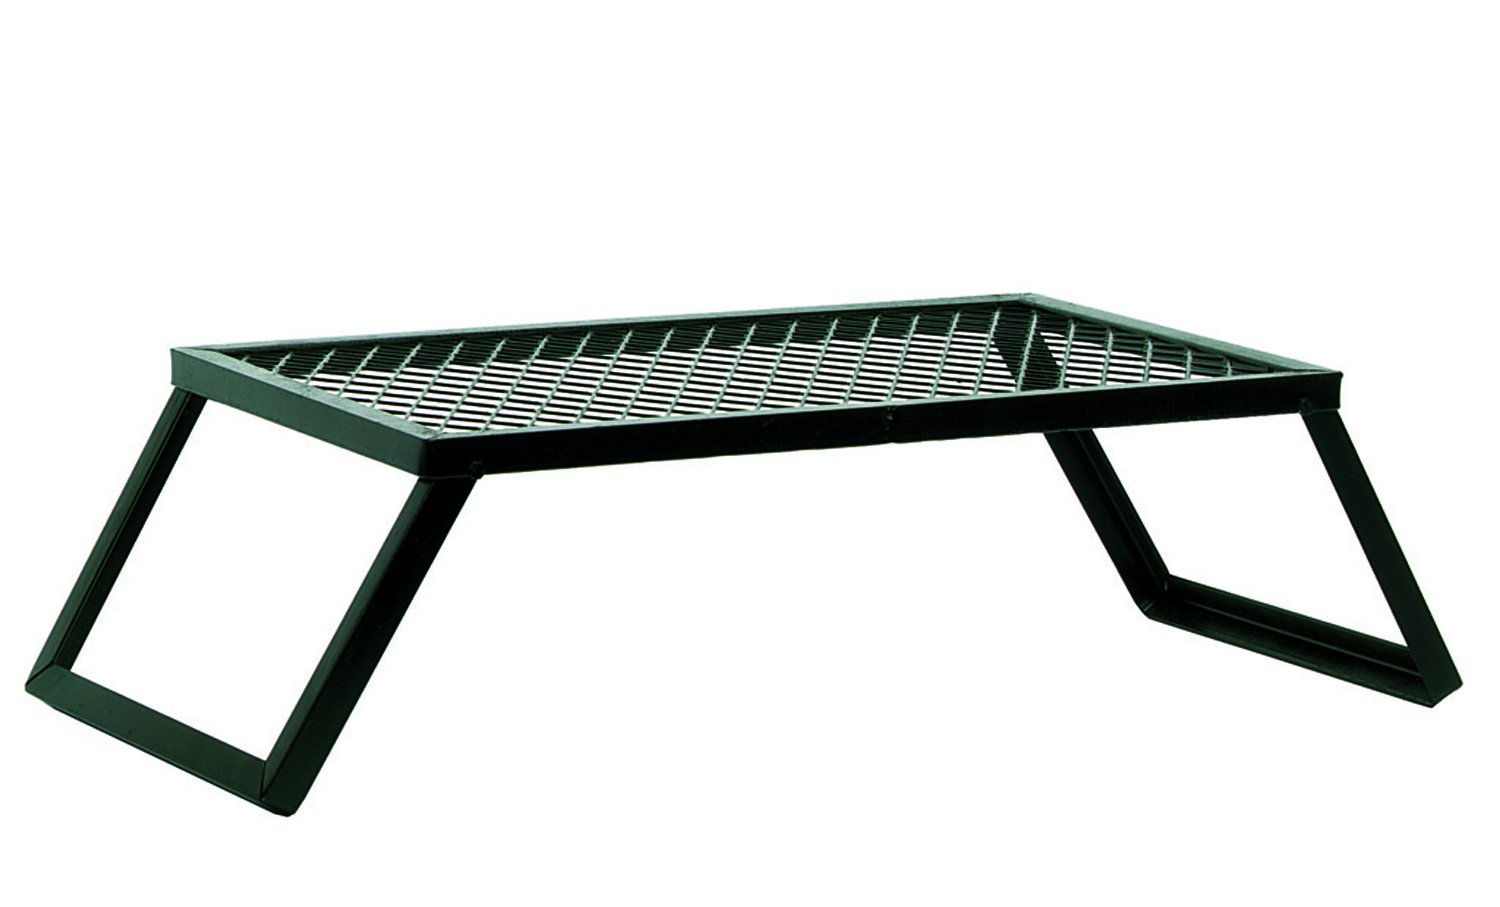 Texsport Heavy Duty Camp Extra Large Grill by Texsport